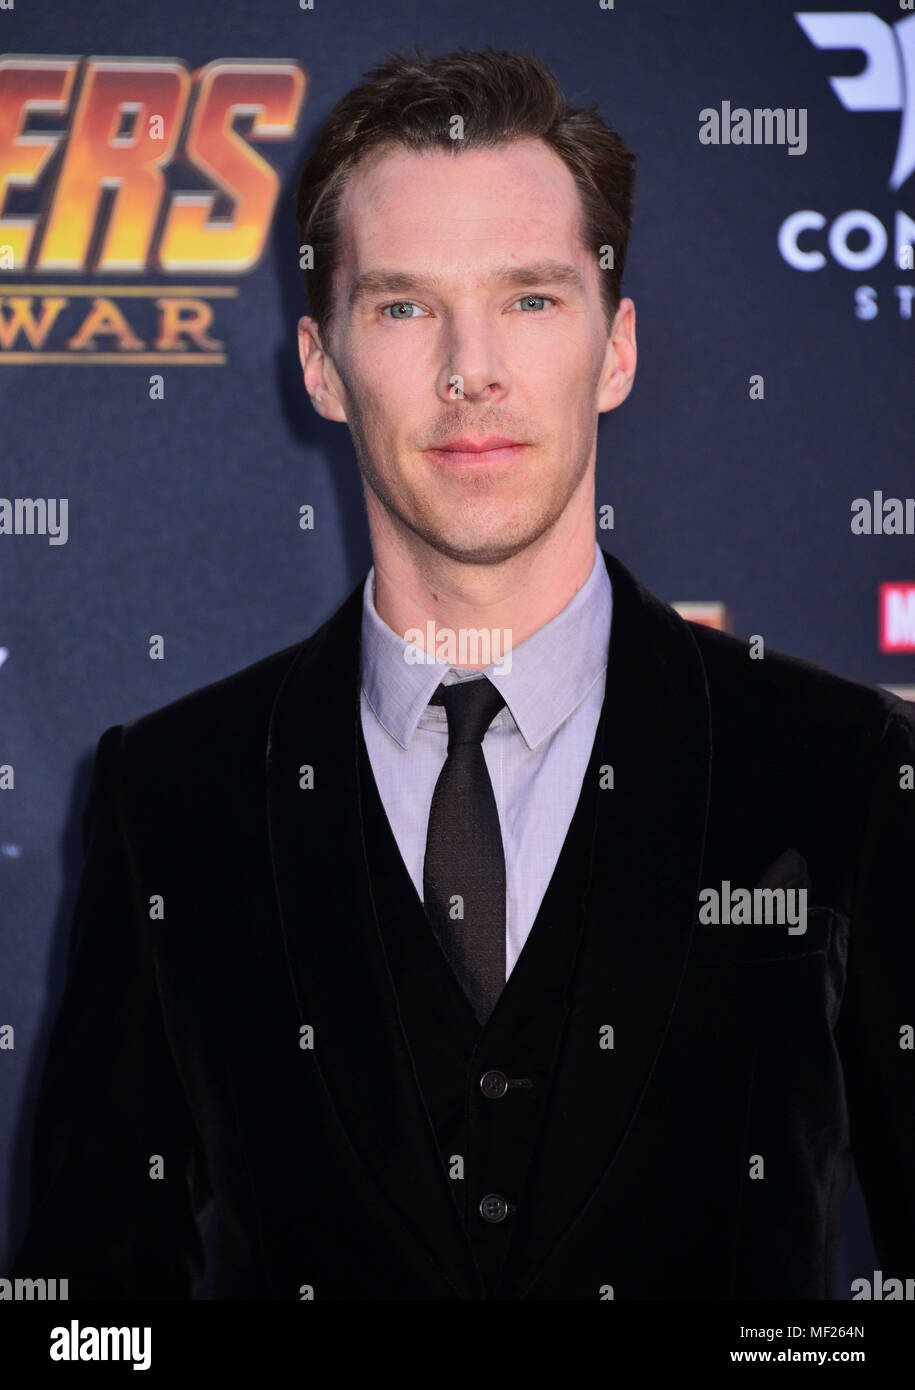 Los Angeles, California, USA. 23rd April, 2018. Benedict Cumberbatch 058 attends the premiere of Disney and Marvel's 'Avengers: Infinity War' on April 23, 2018 in Los Angeles, California. Credit: Tsuni / USA/Alamy Live News Stock Photo